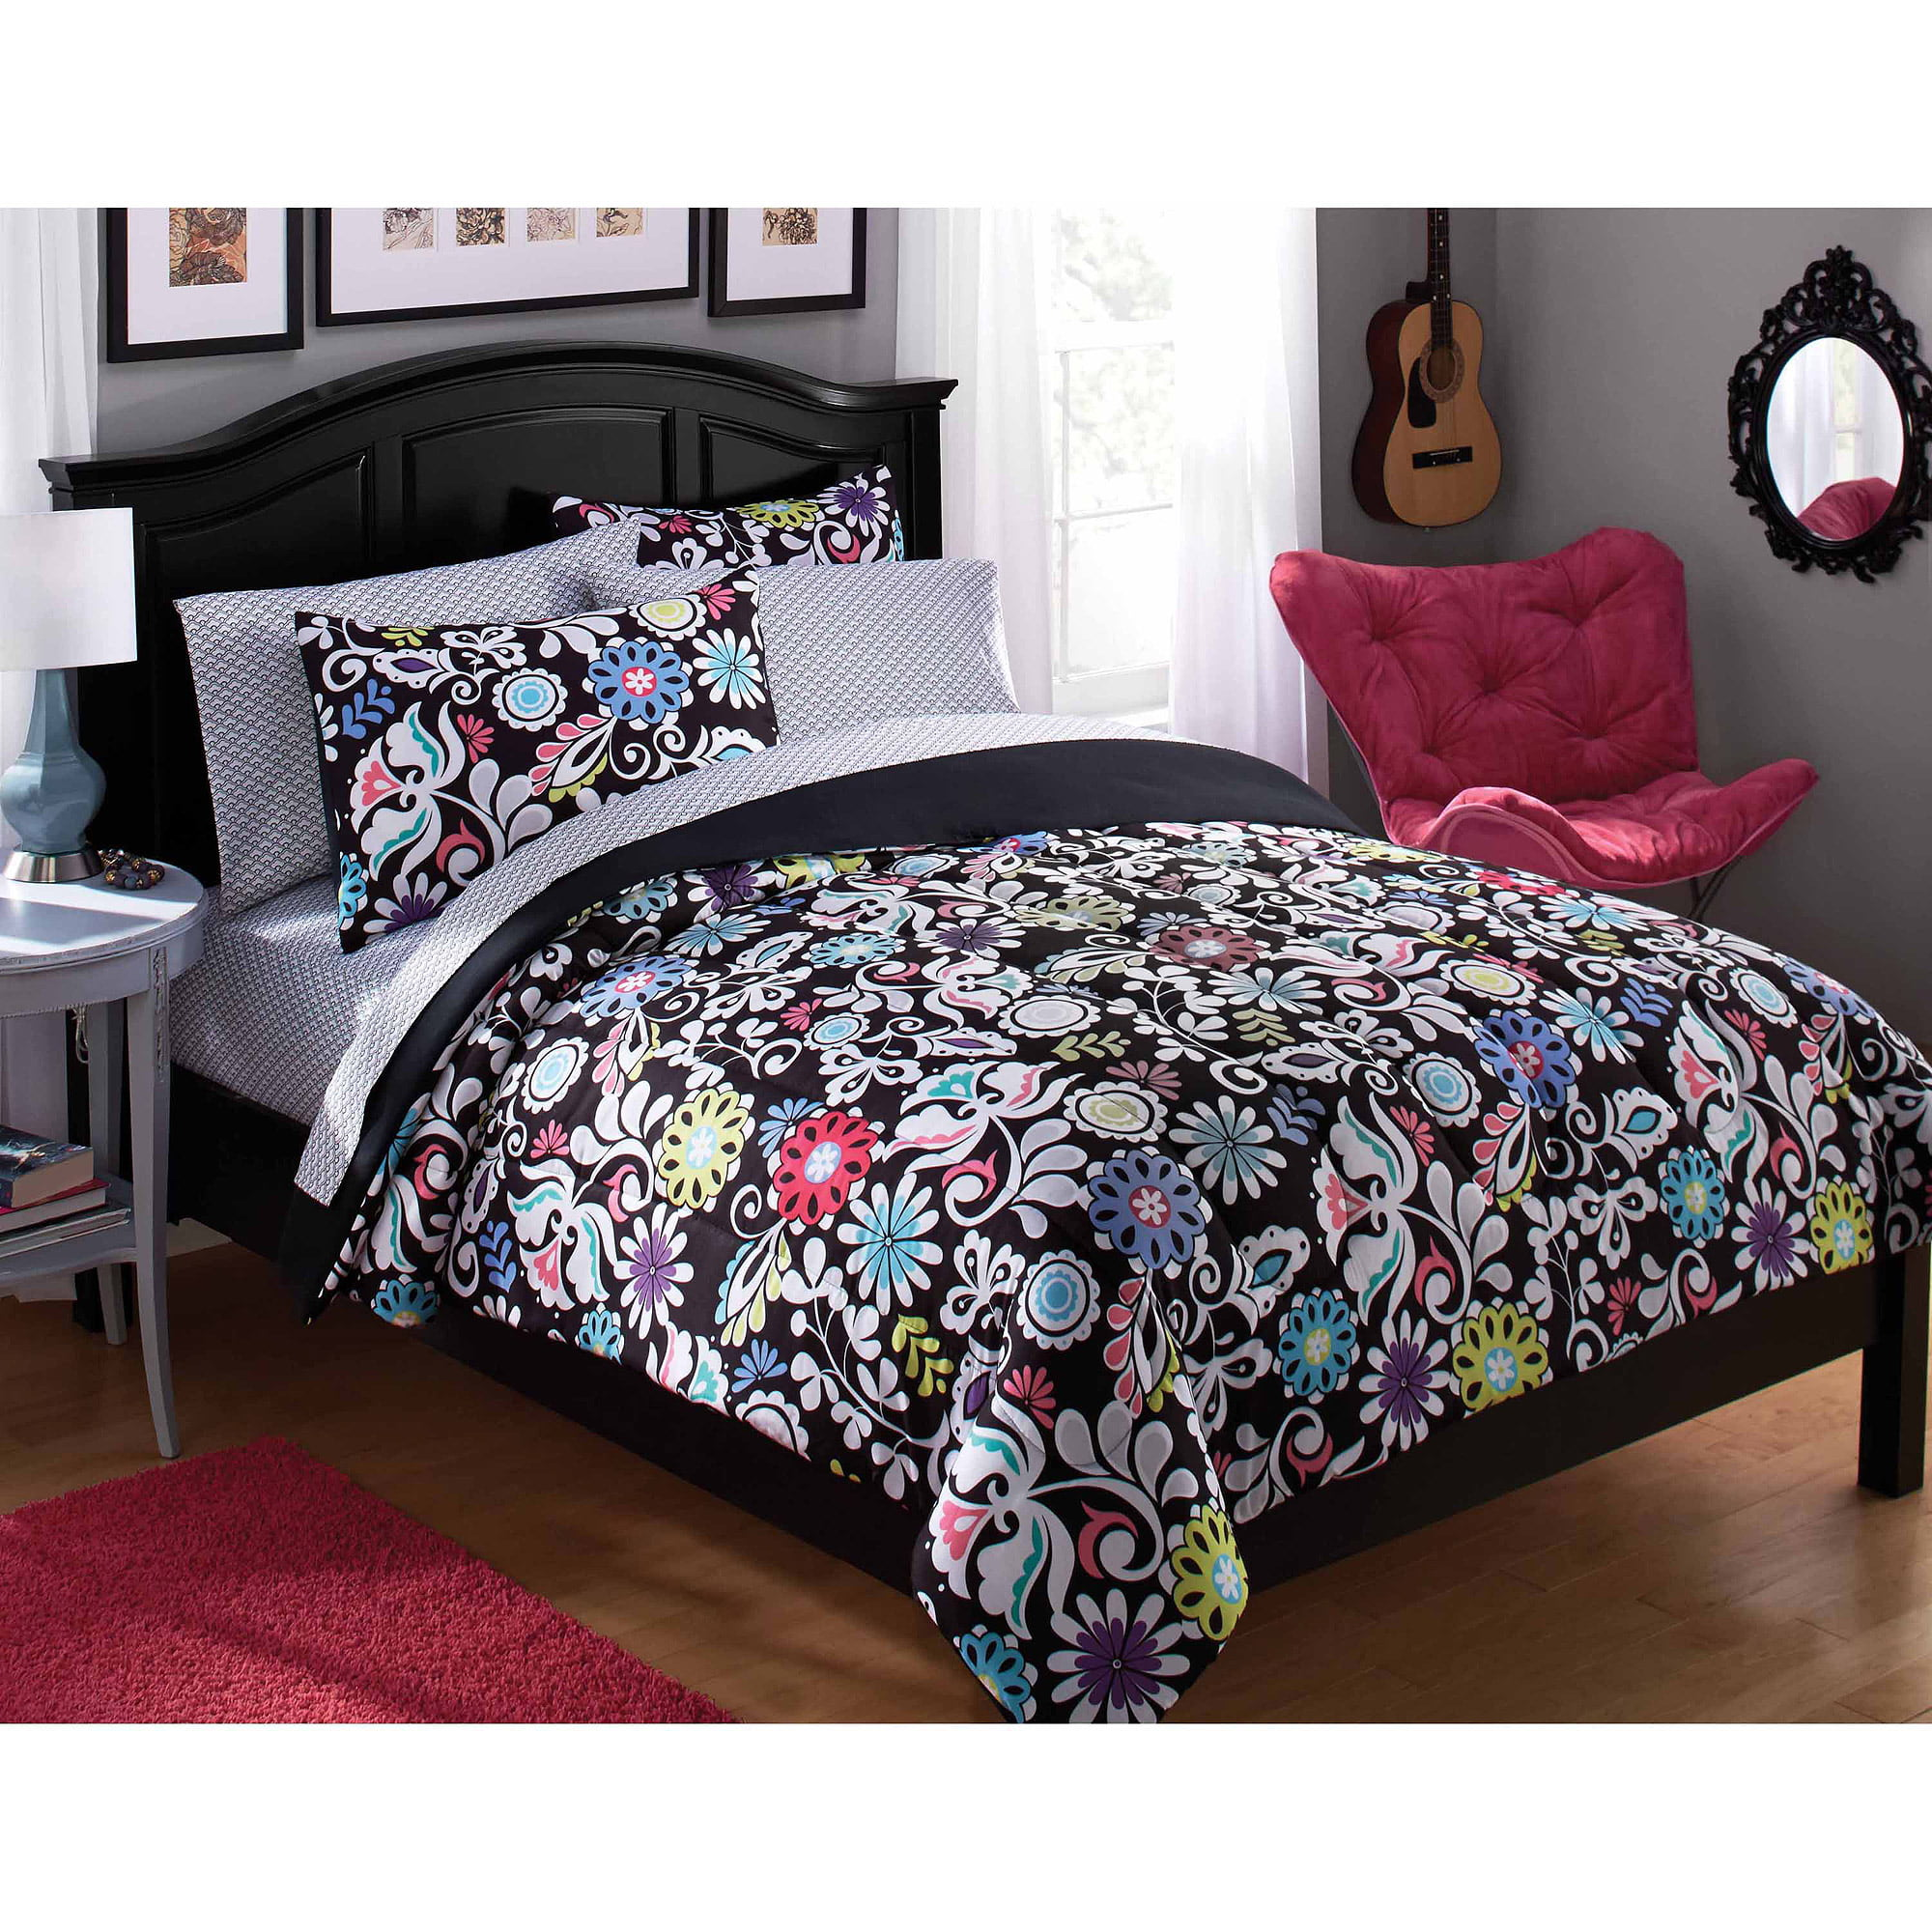 Bedding sets for teenage girls walmart - Your Zone Paradise Bed In A Bag Black